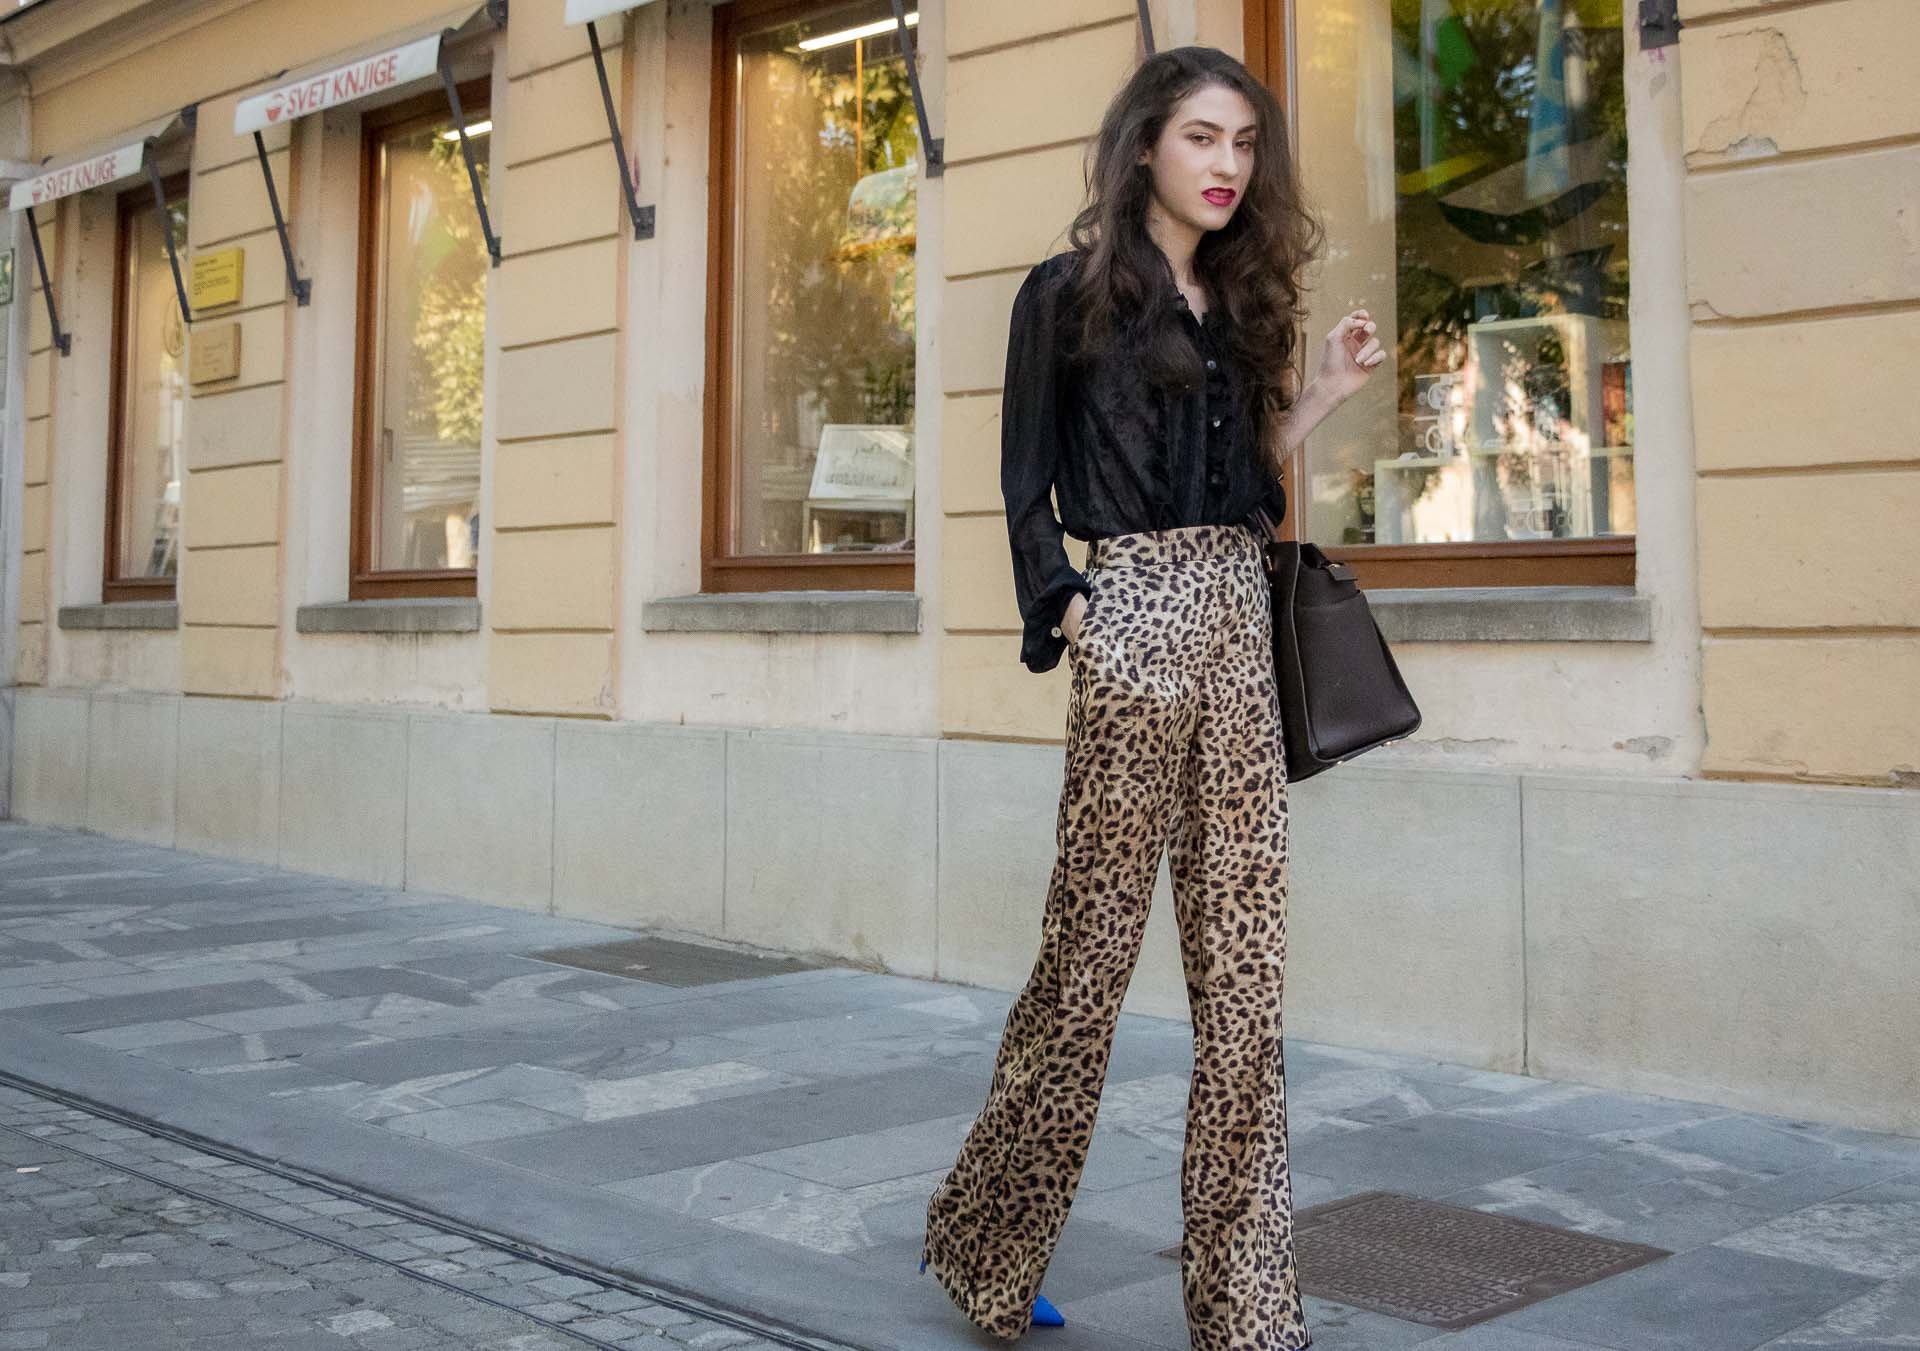 Beautiful Slovenian Fashion Blogger Veronika Lipar of Brunette from Wall dressed in black sheer blouse, Zara leopard print wide-leg pants, blue Gianvito Rossi satin pumps, brown Michael Kors Selma tote bag, on her way to work